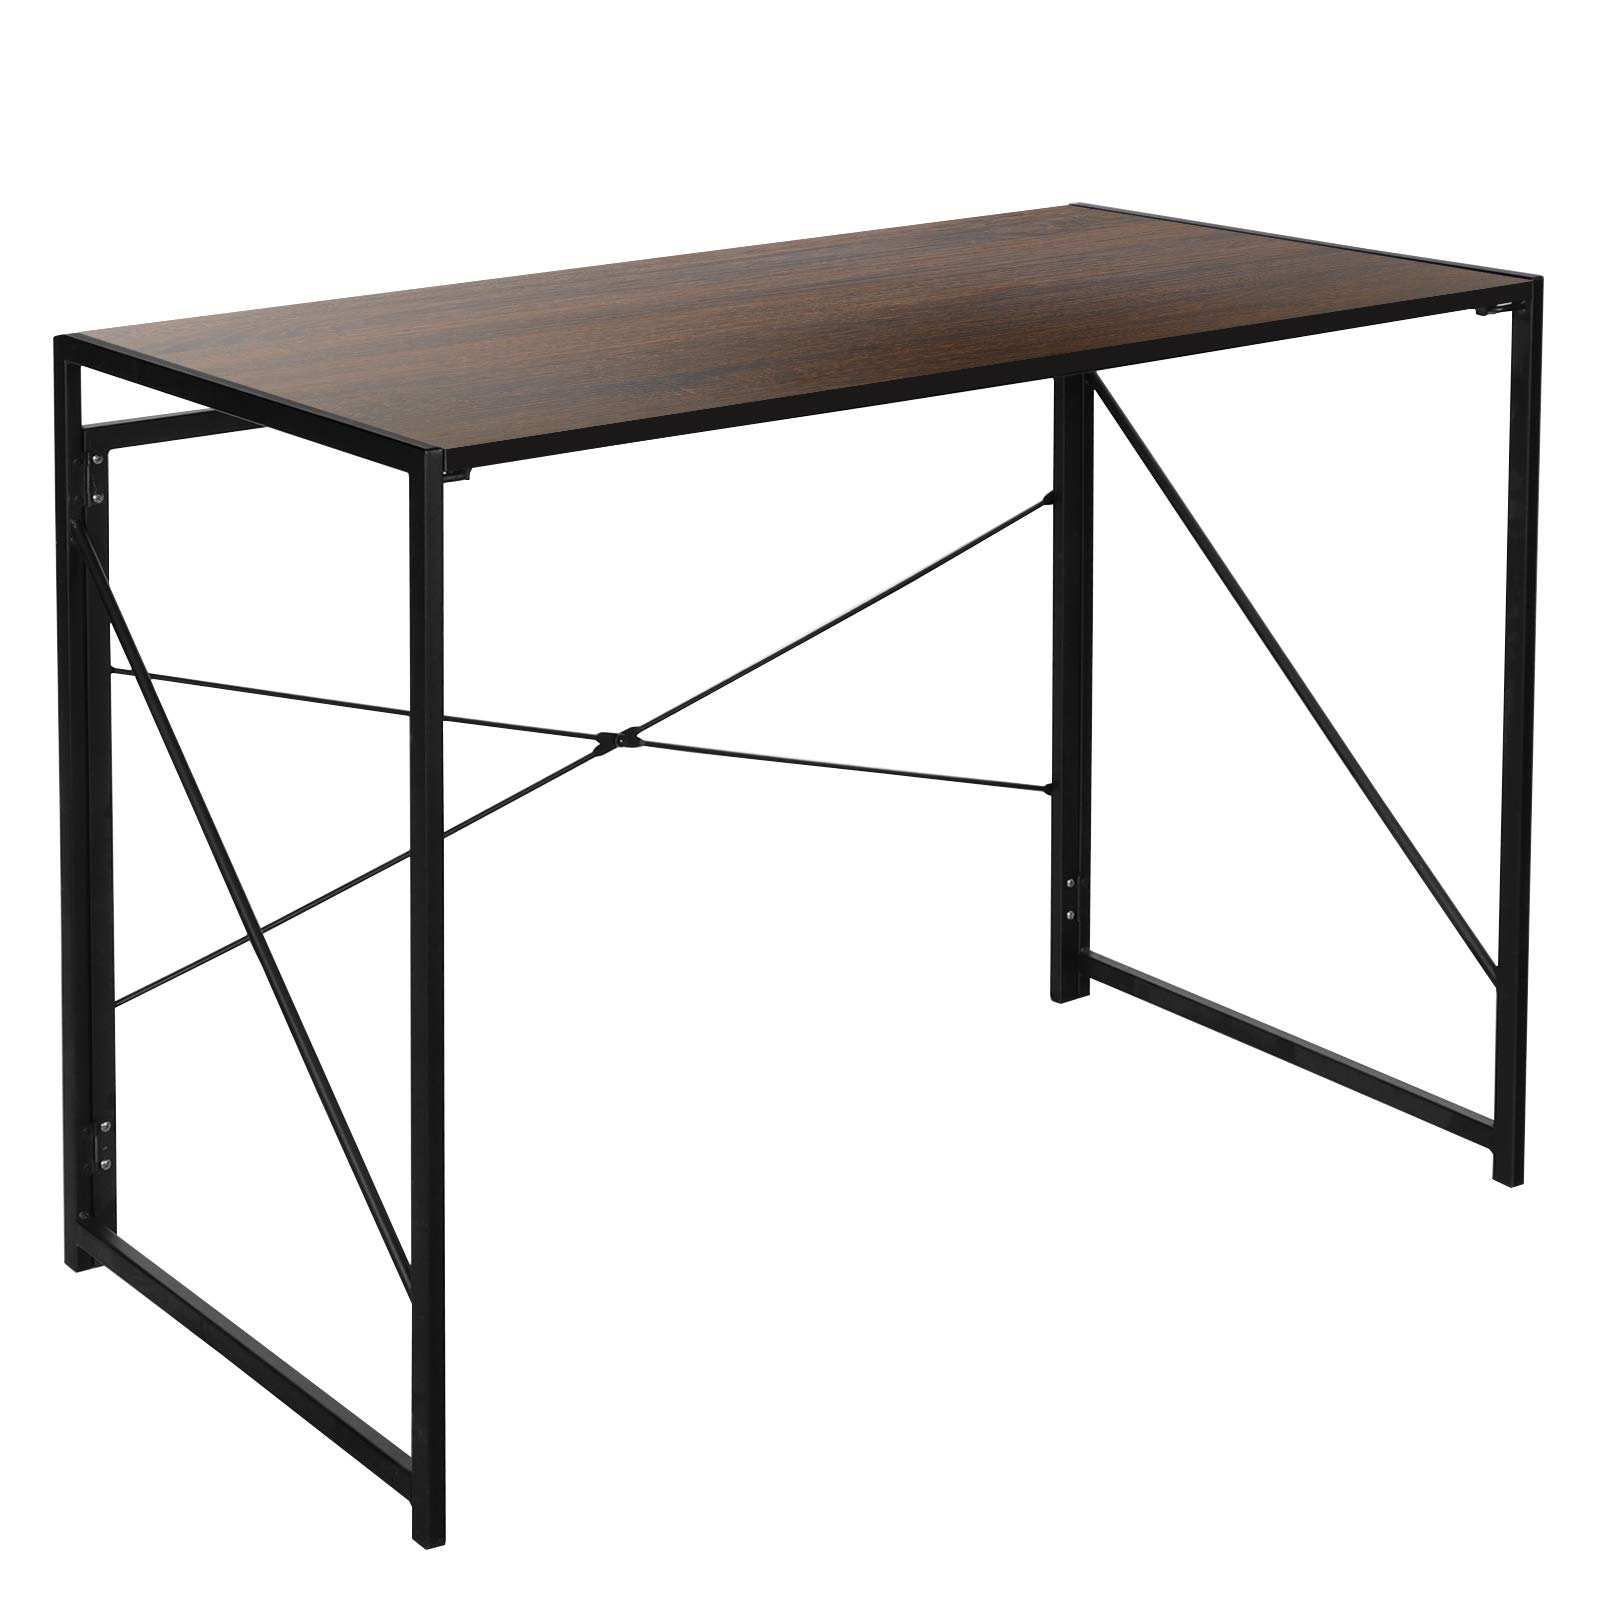 ZENY Foldable Computer Desk PC Laptop Table Workstation Writing Table Home Office Desk,Study Table Student Desk